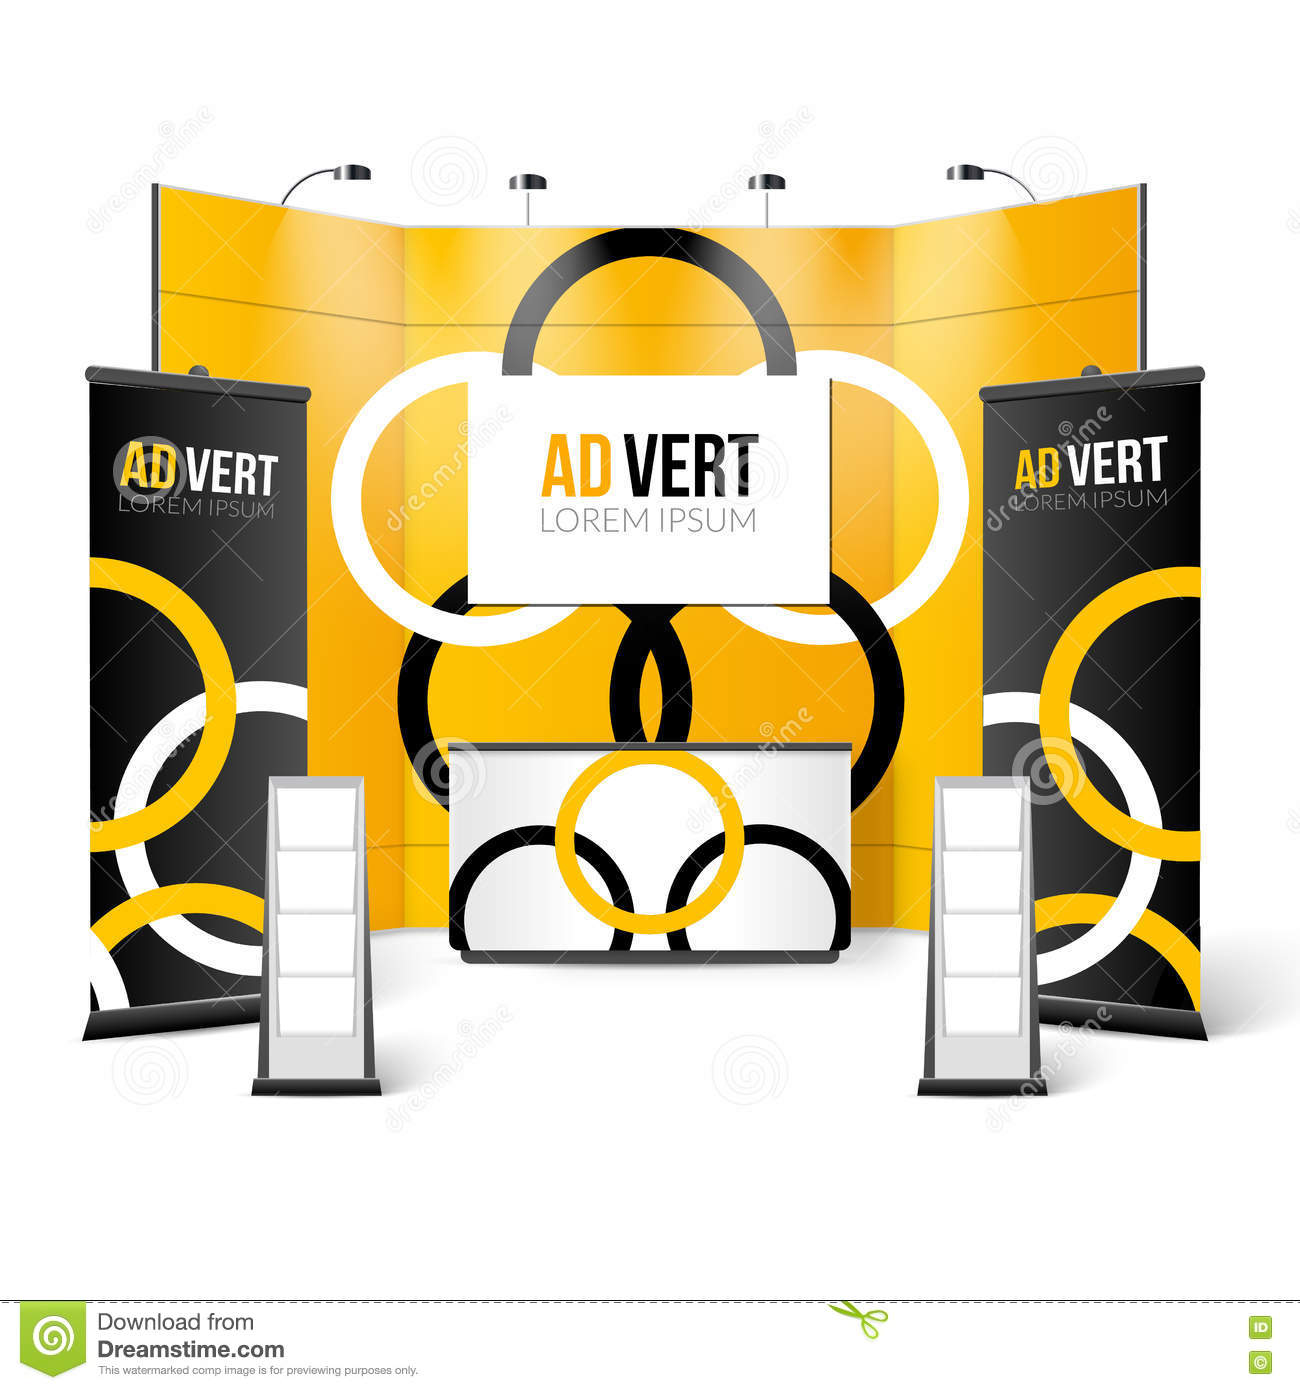 Exhibition Stand Design Illustrator : Exhibition stand bright design cartoon vector